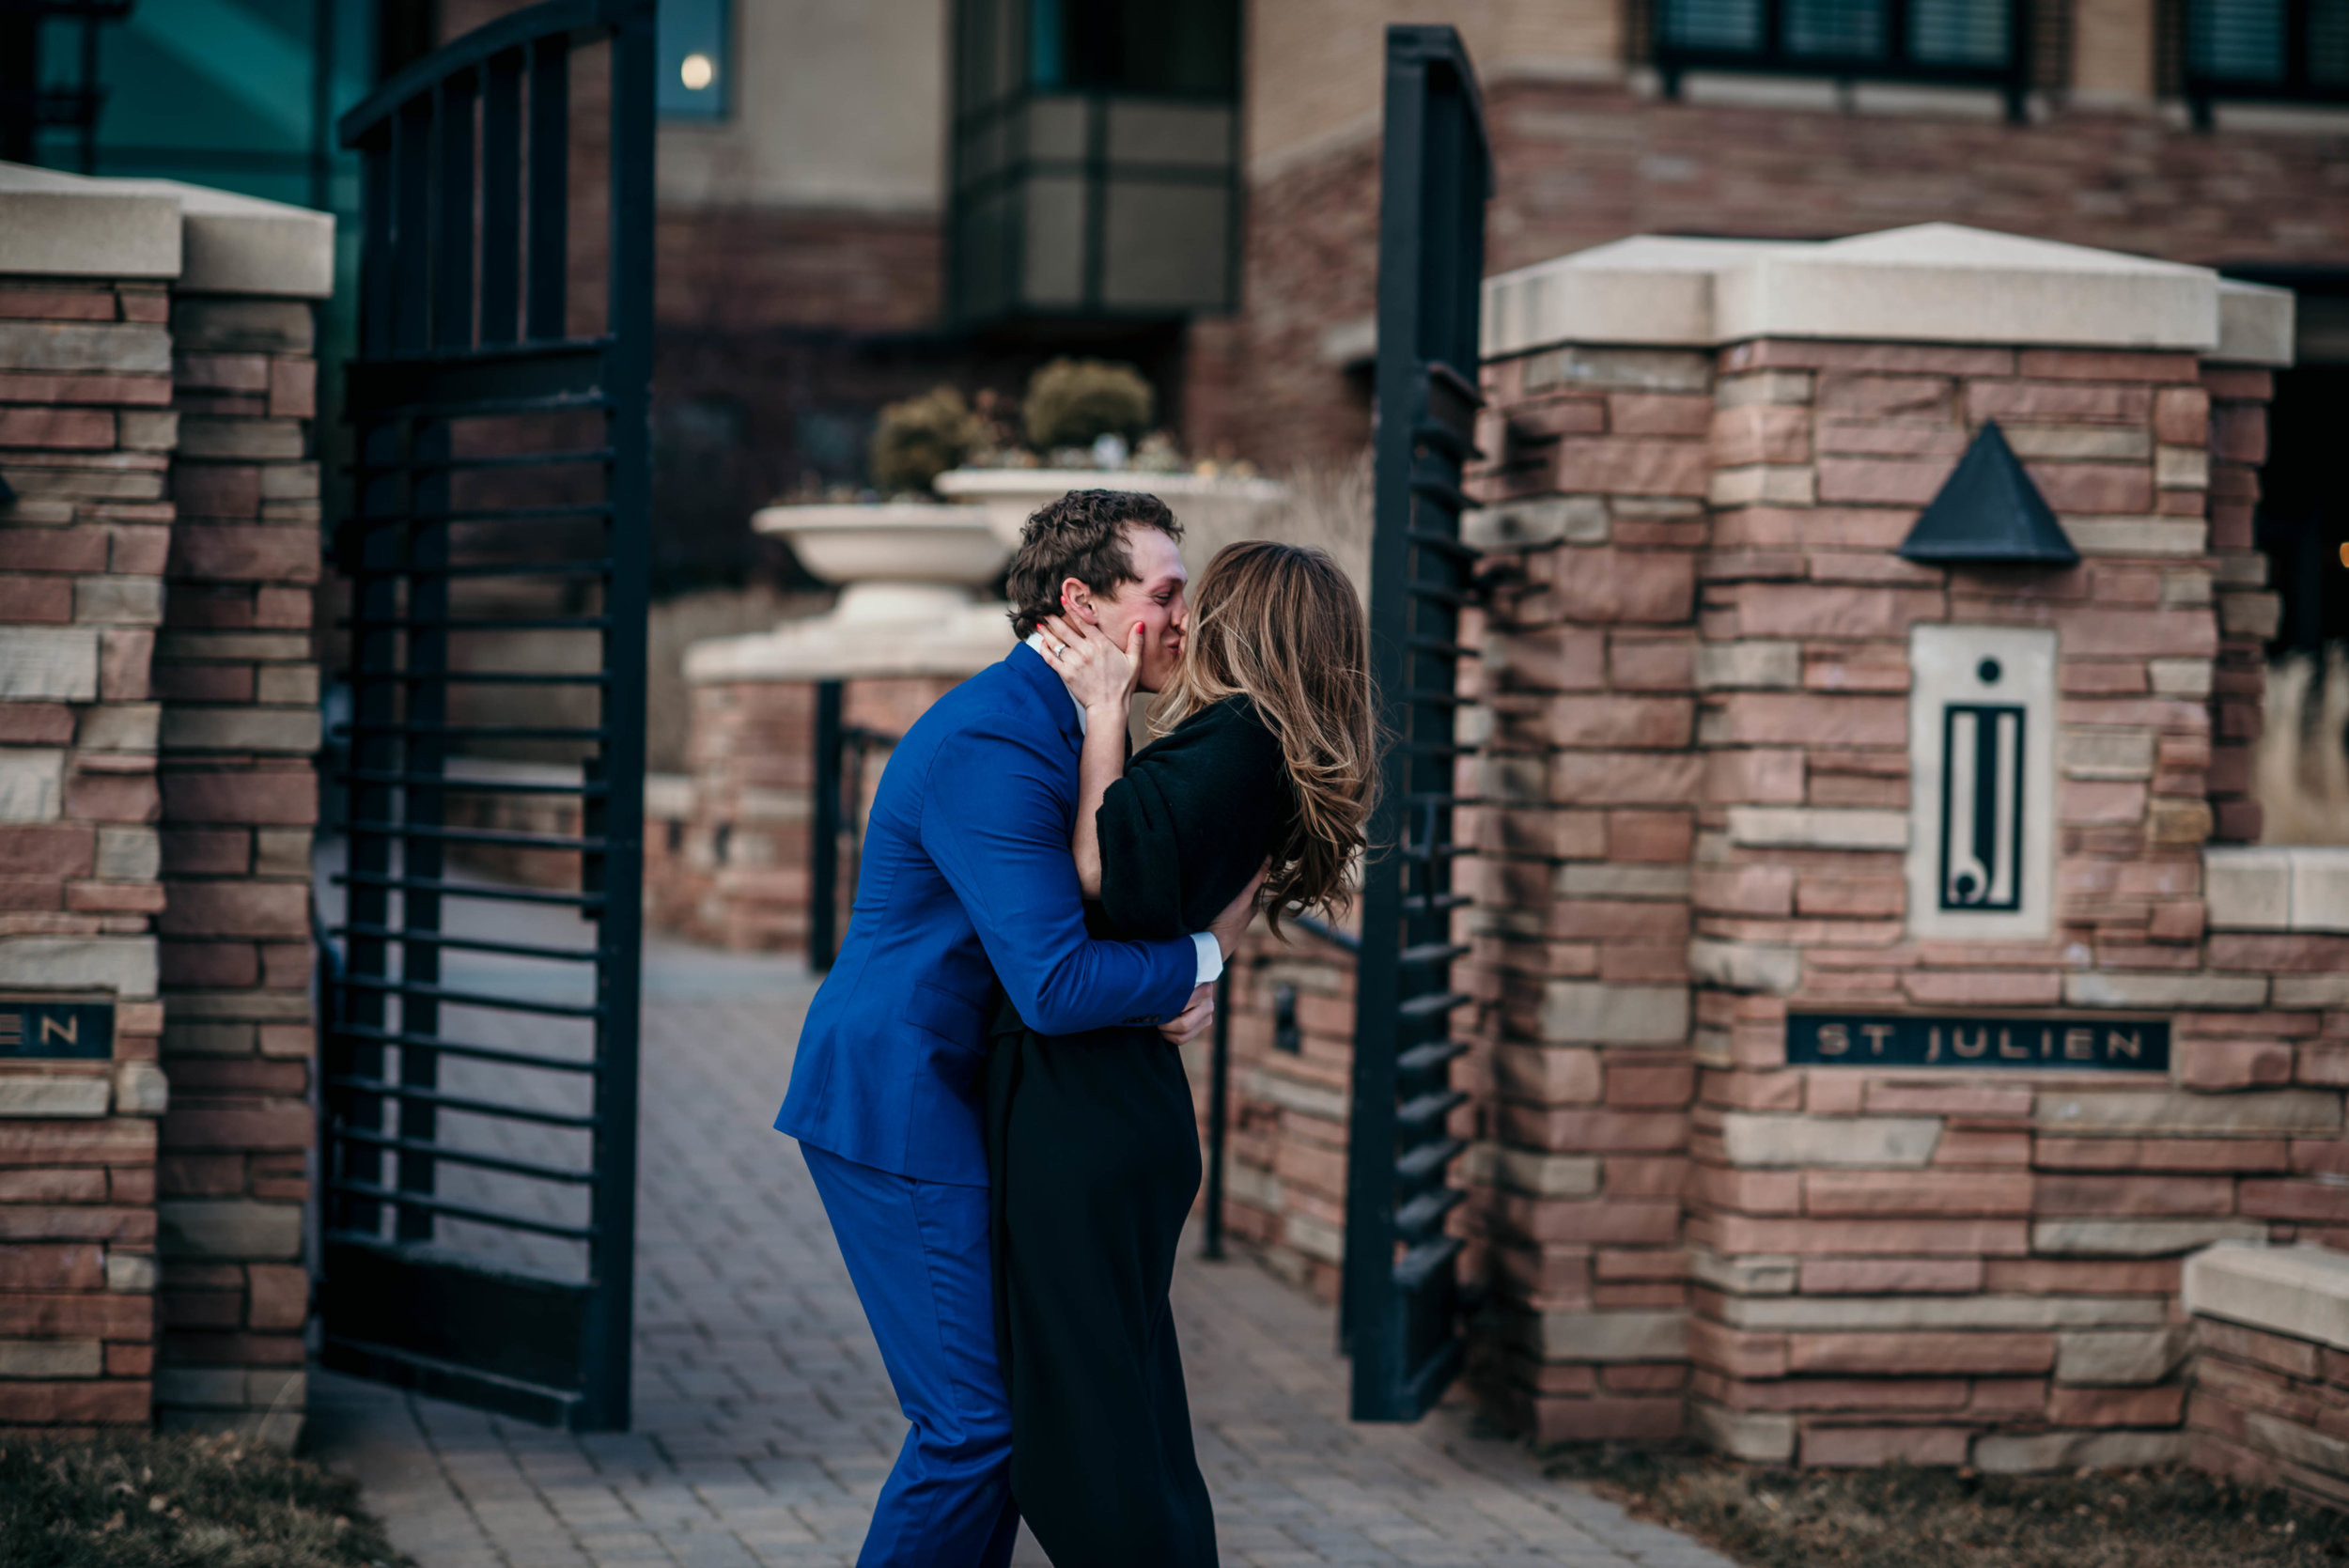 colorado_proposal_photographer_0333.jpg